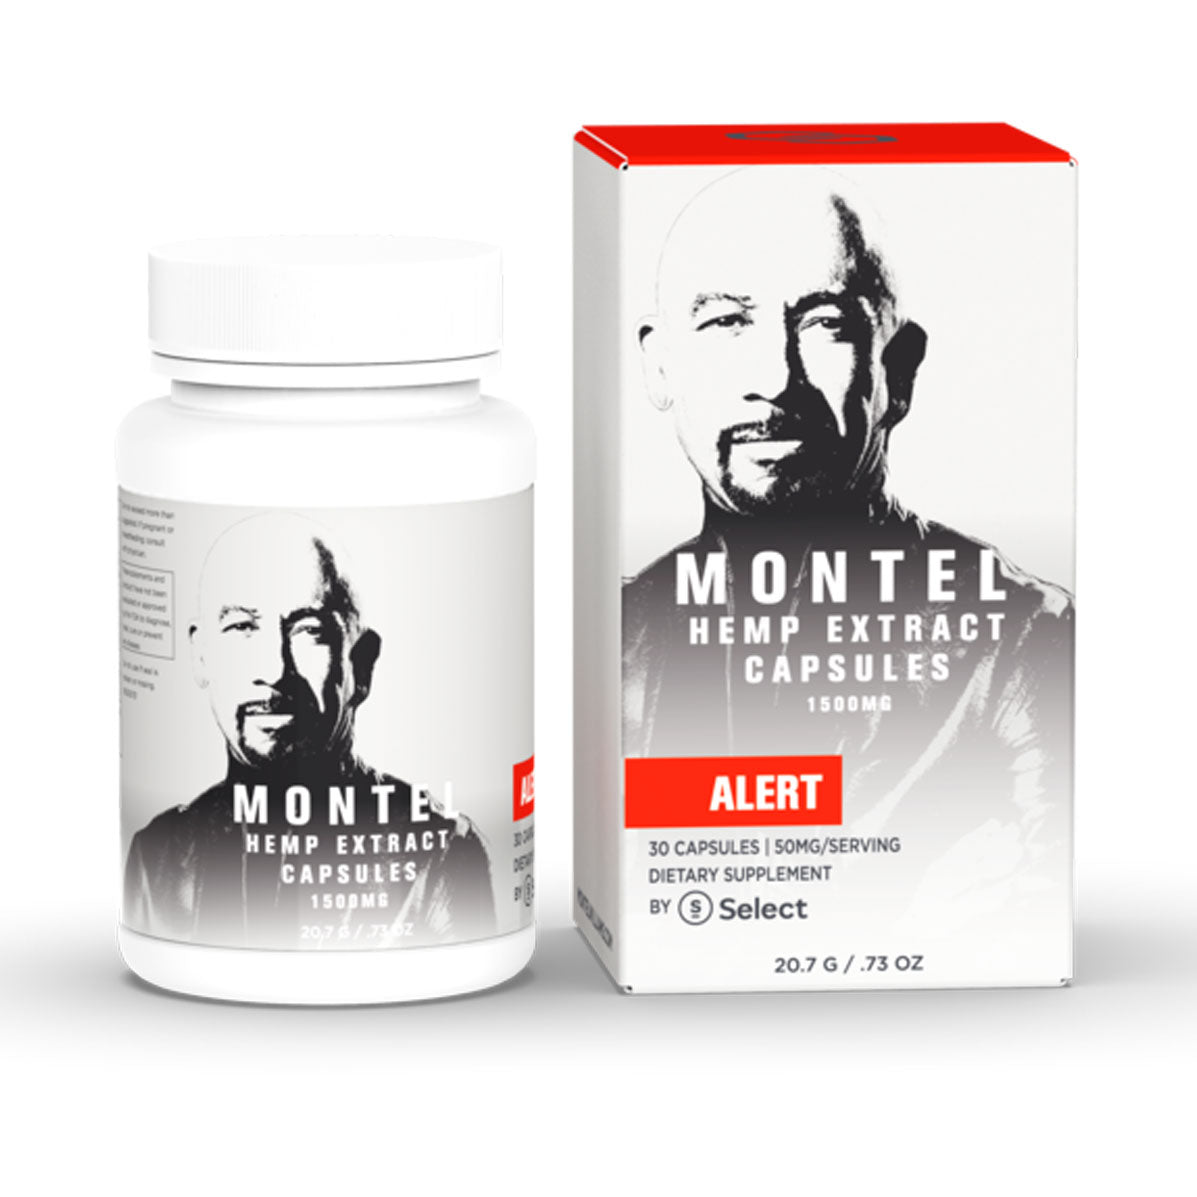 Montel by Select 1500mg Alert Capsules